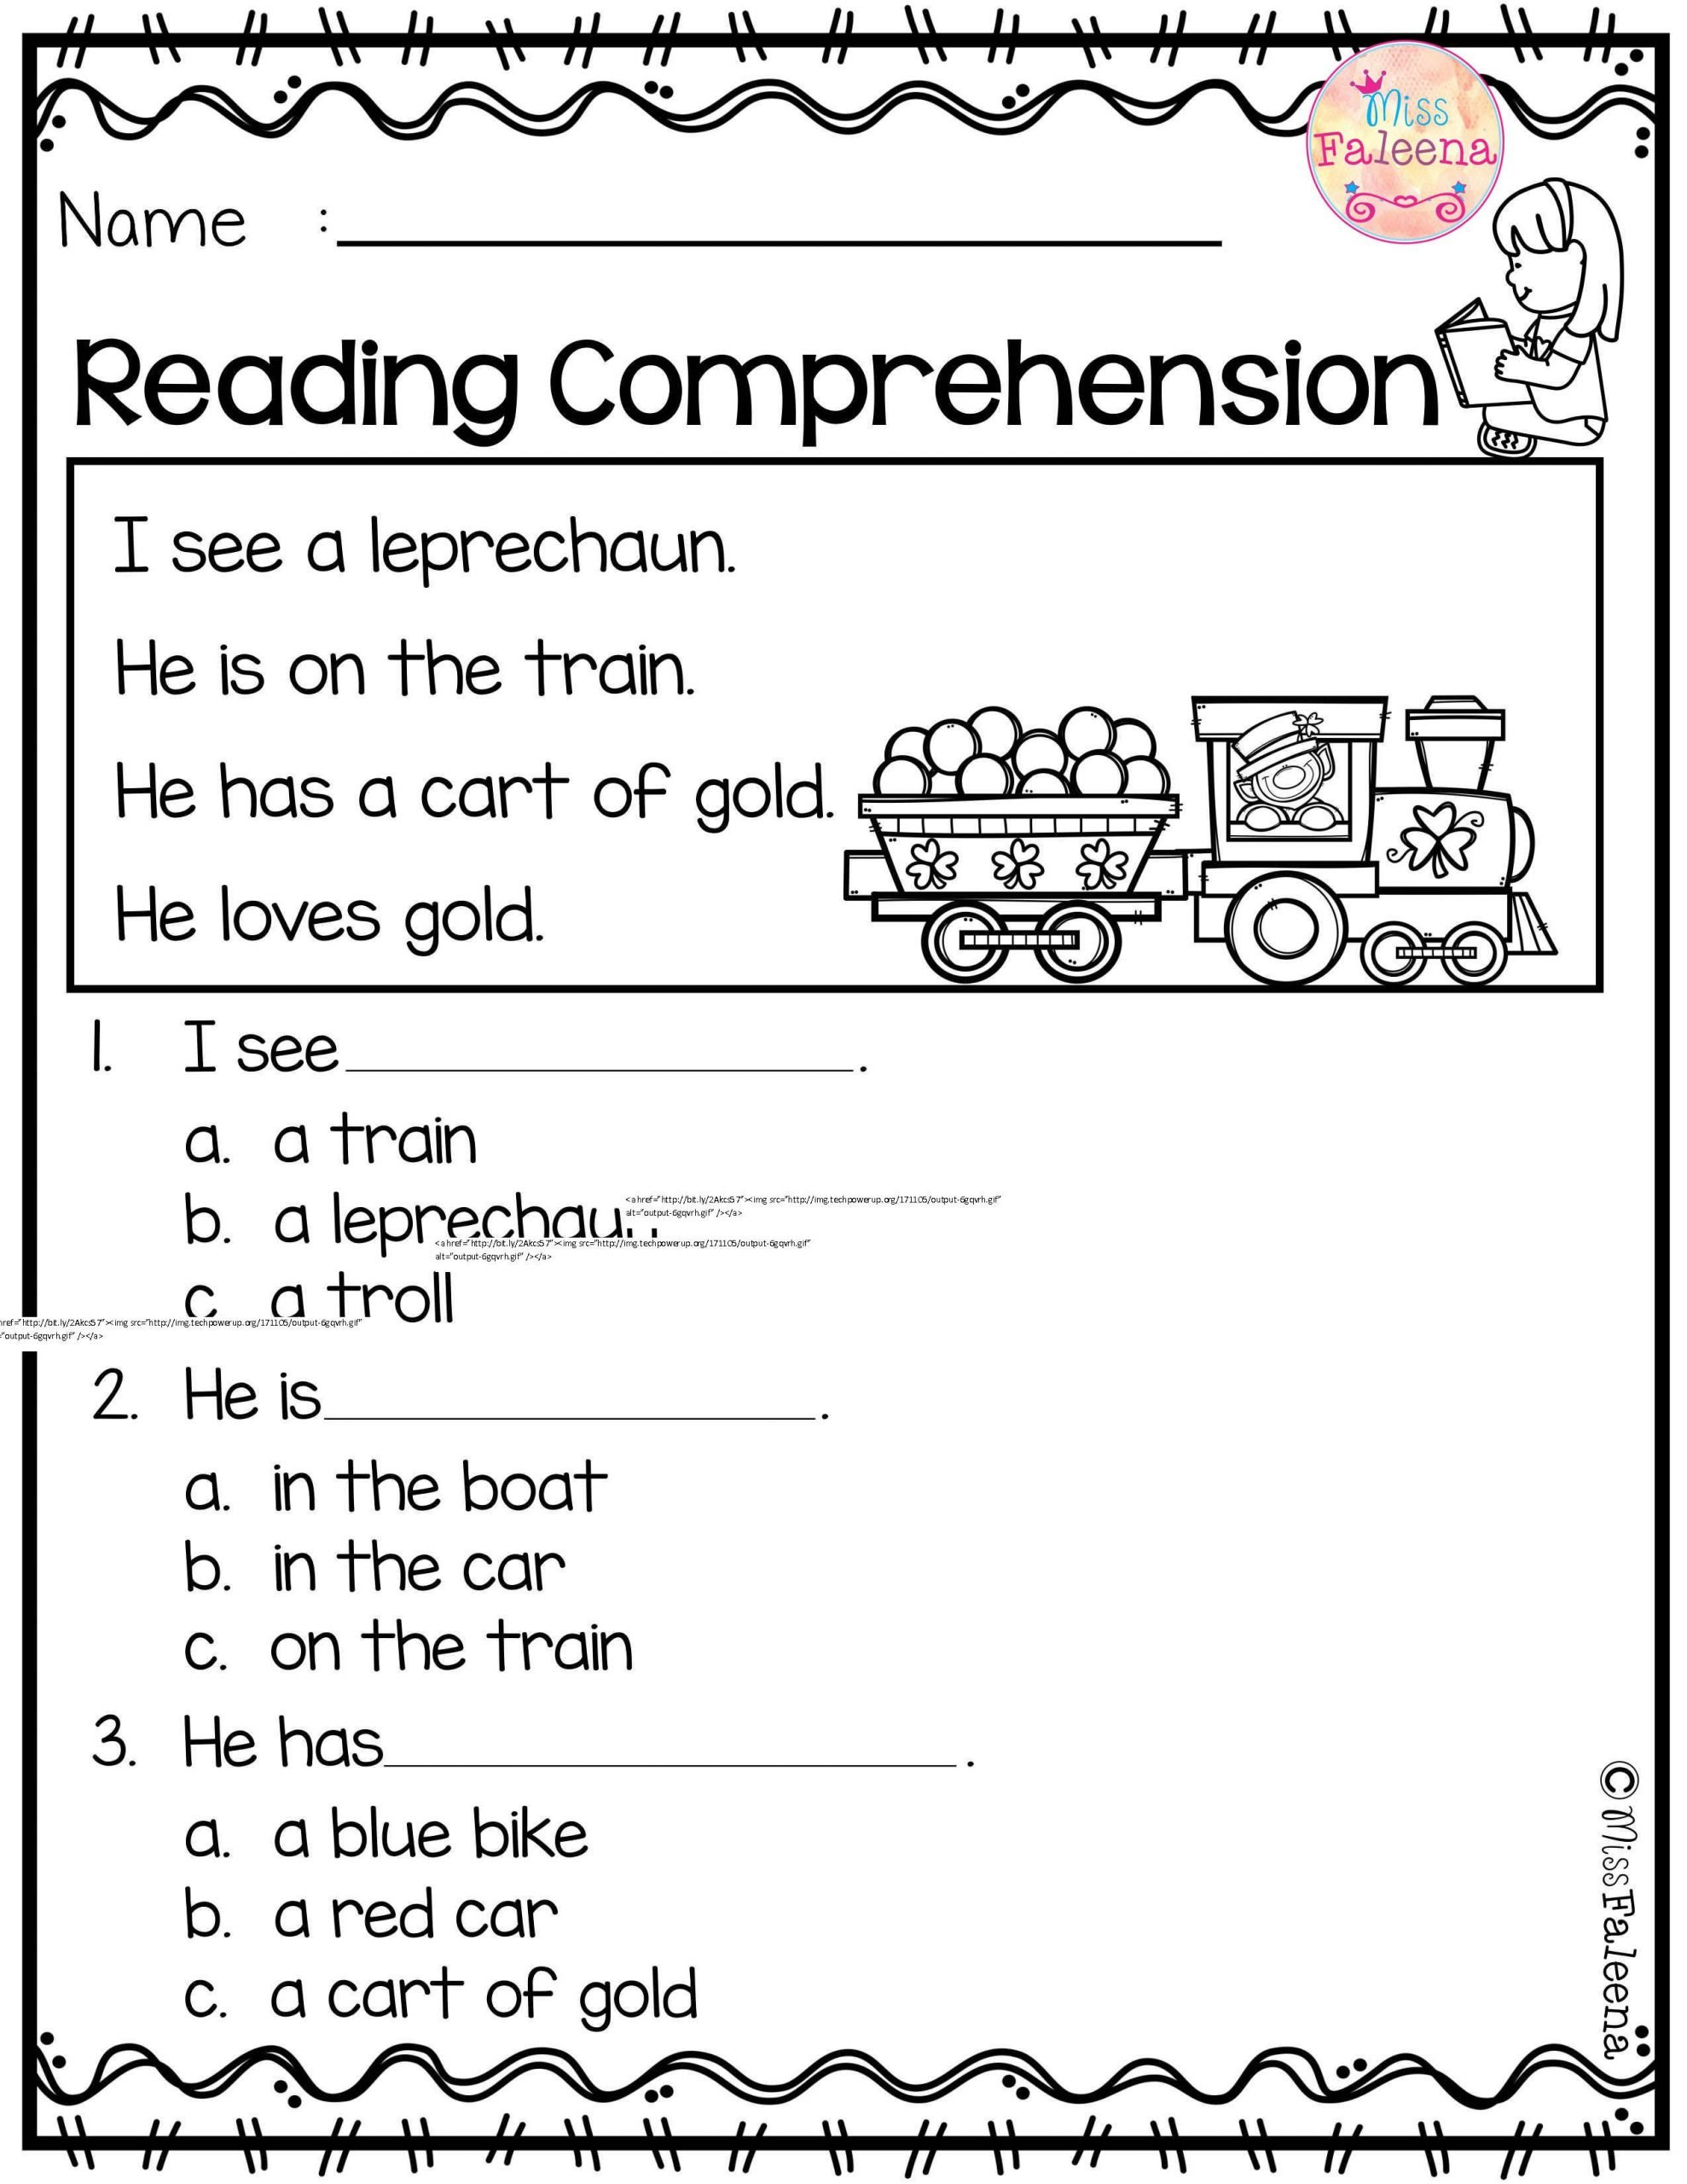 Comprehension Worksheets for Kindergarten March Reading Prehension is Suitable for Kindergarten